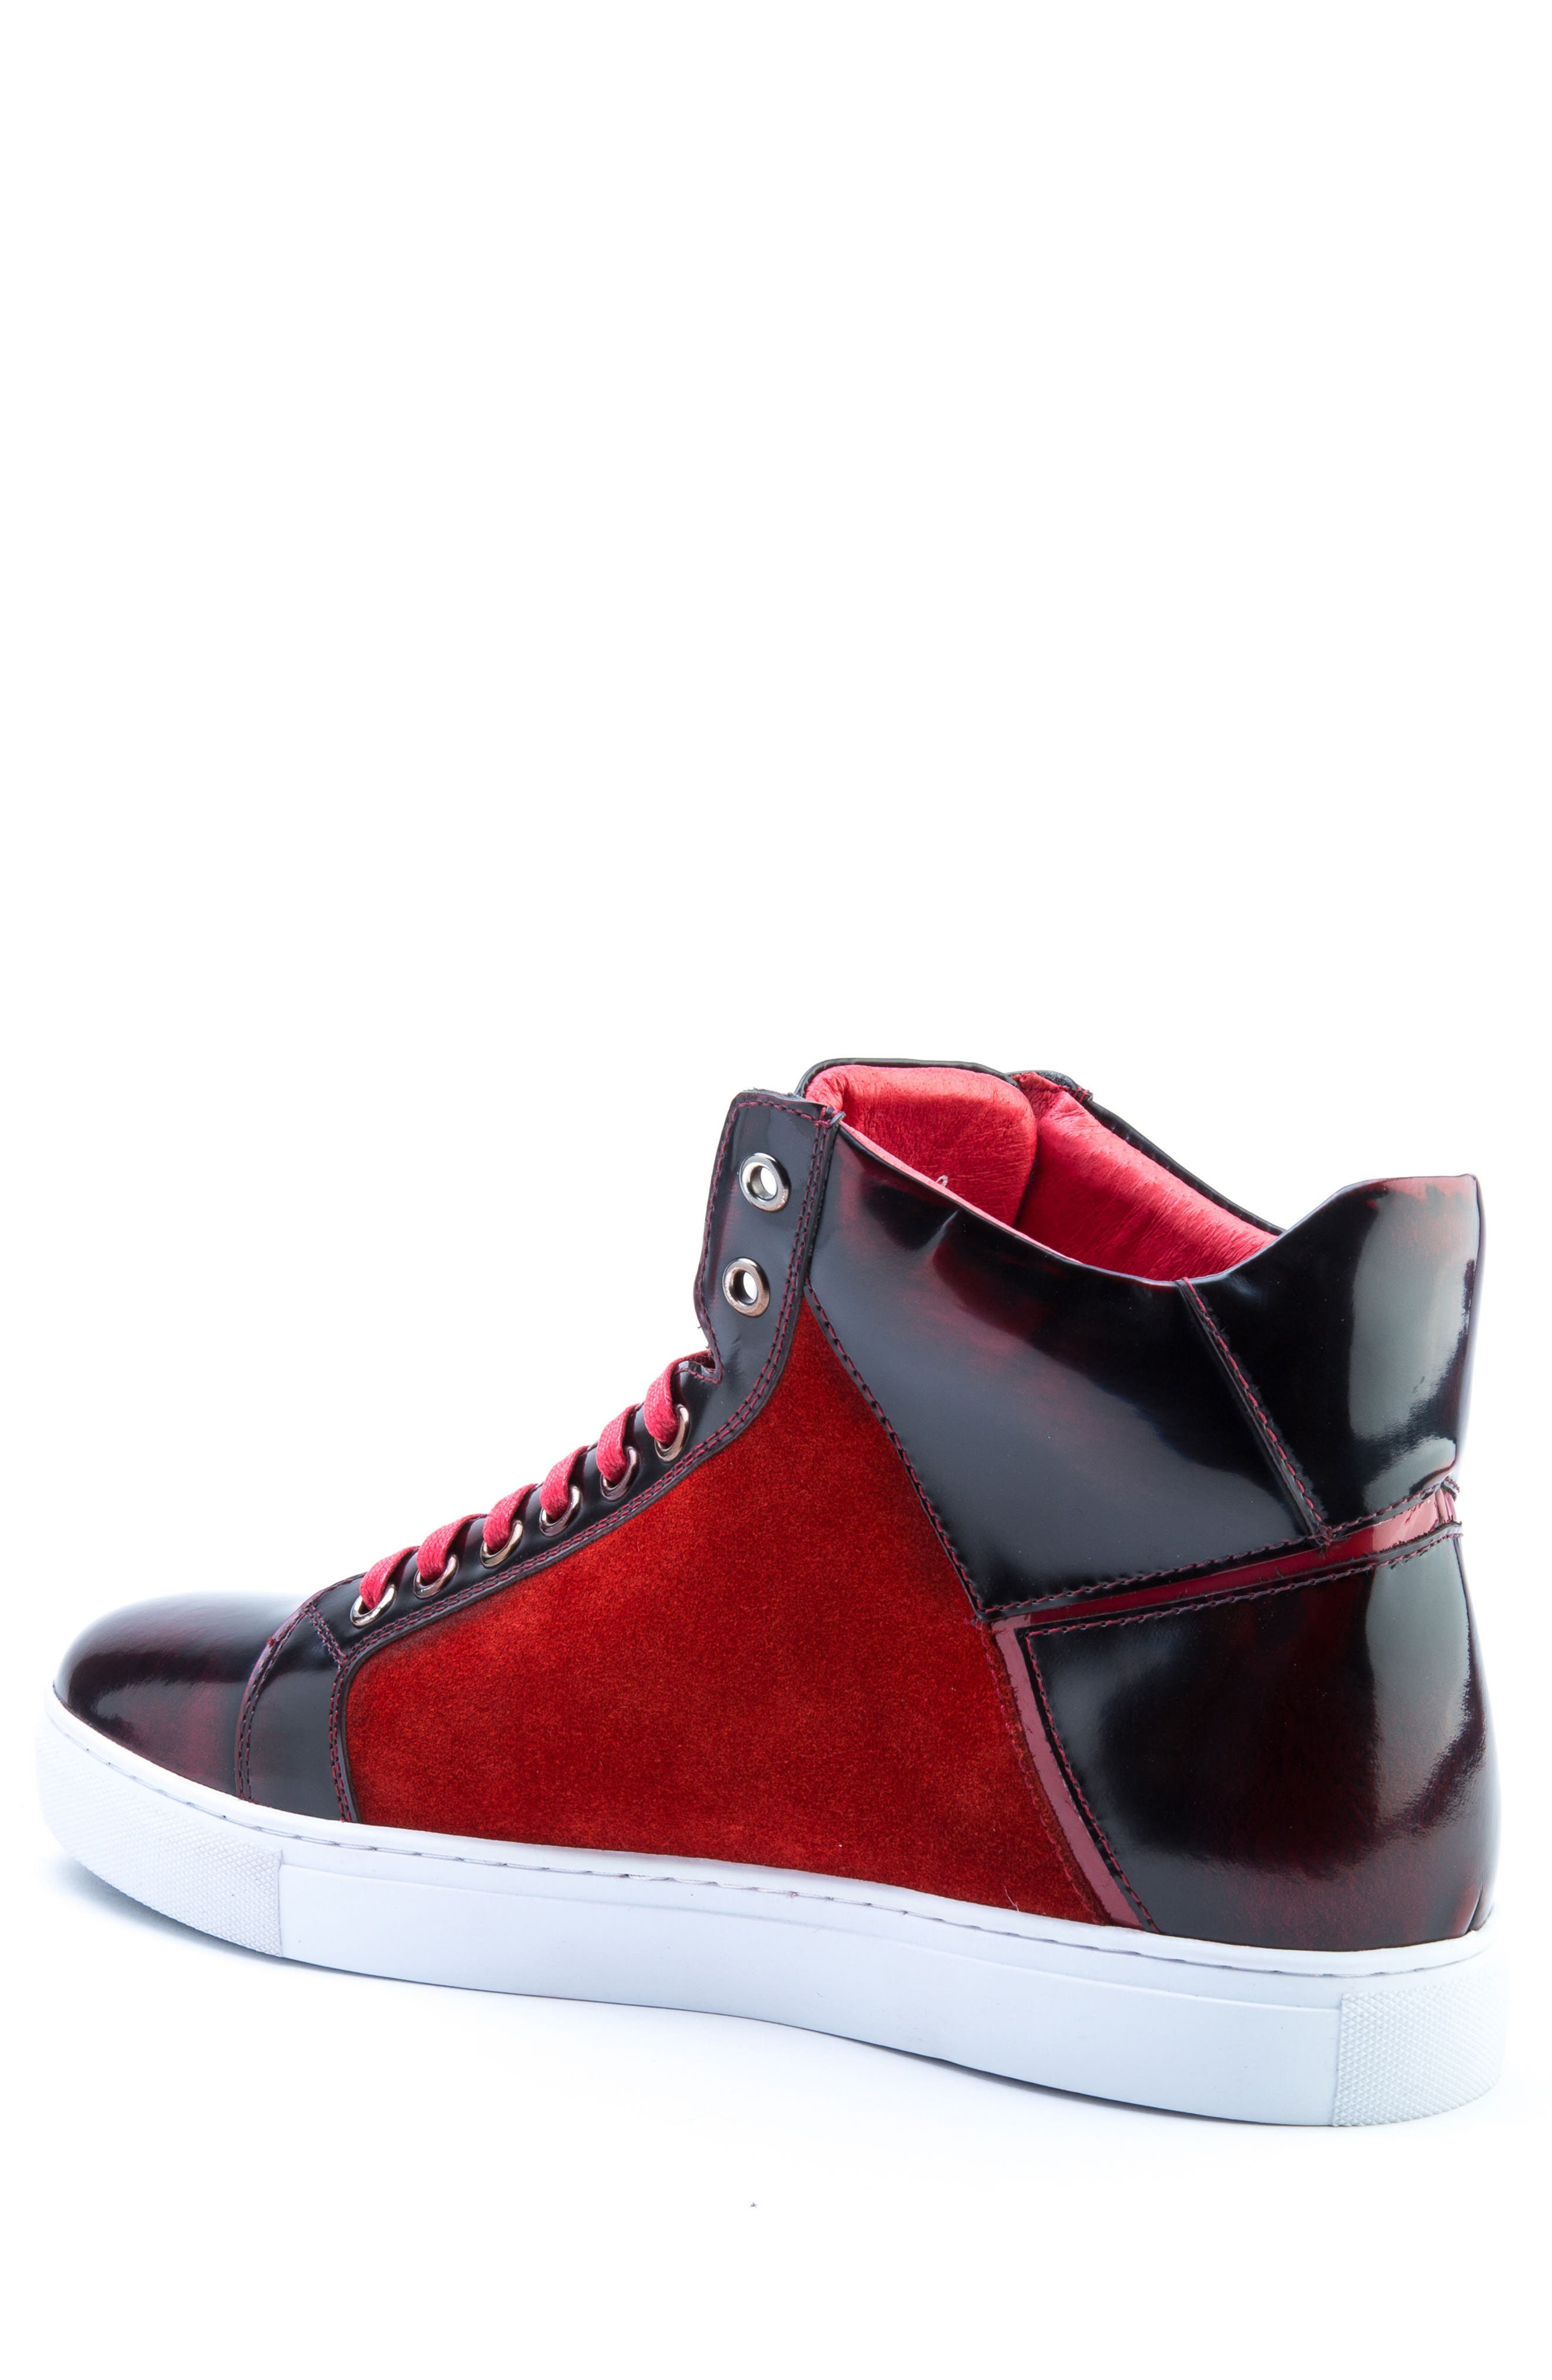 Douglas High Top Sneaker,                             Alternate thumbnail 2, color,                             RED LEATHER